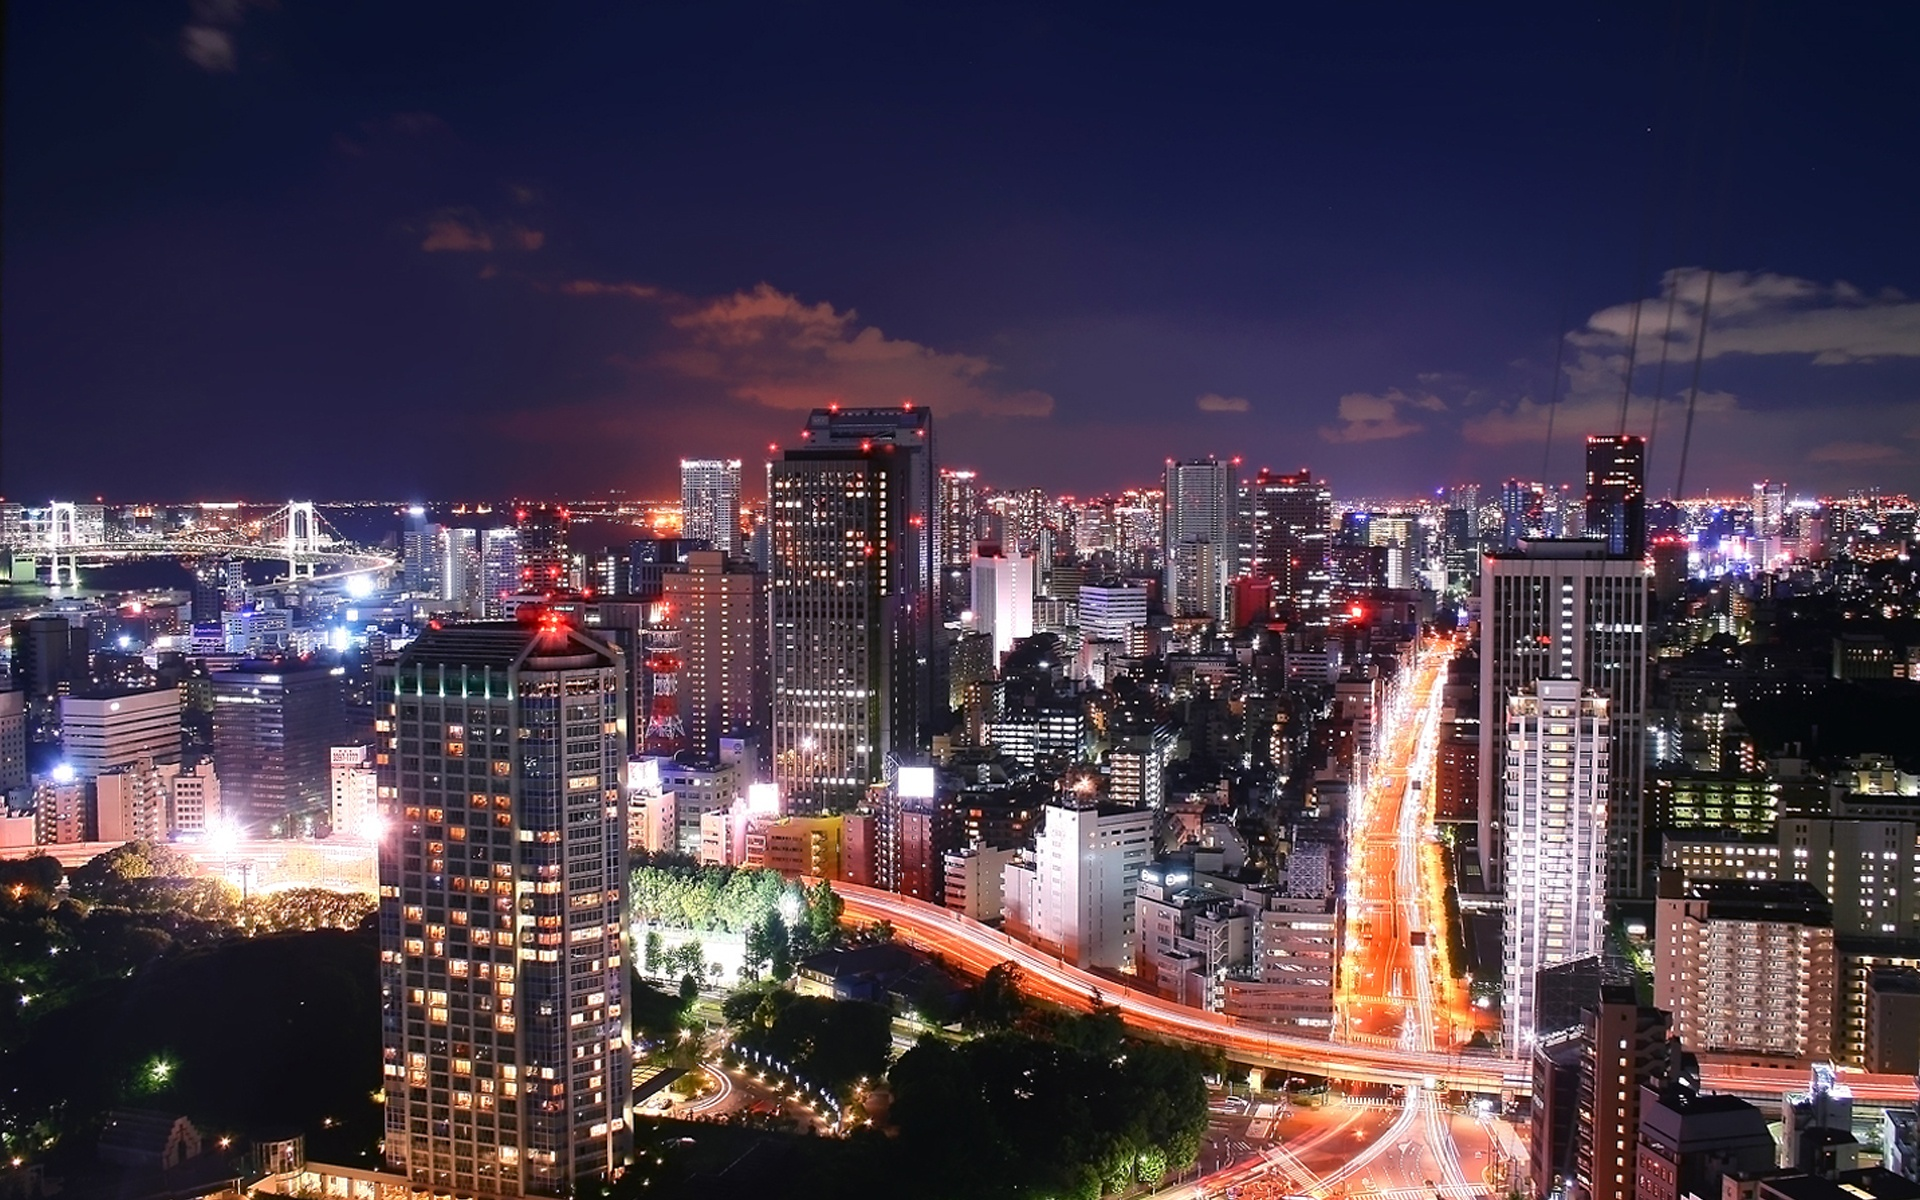 Tokyo City Night Wallpapers   1920x1200   820918 1920x1200